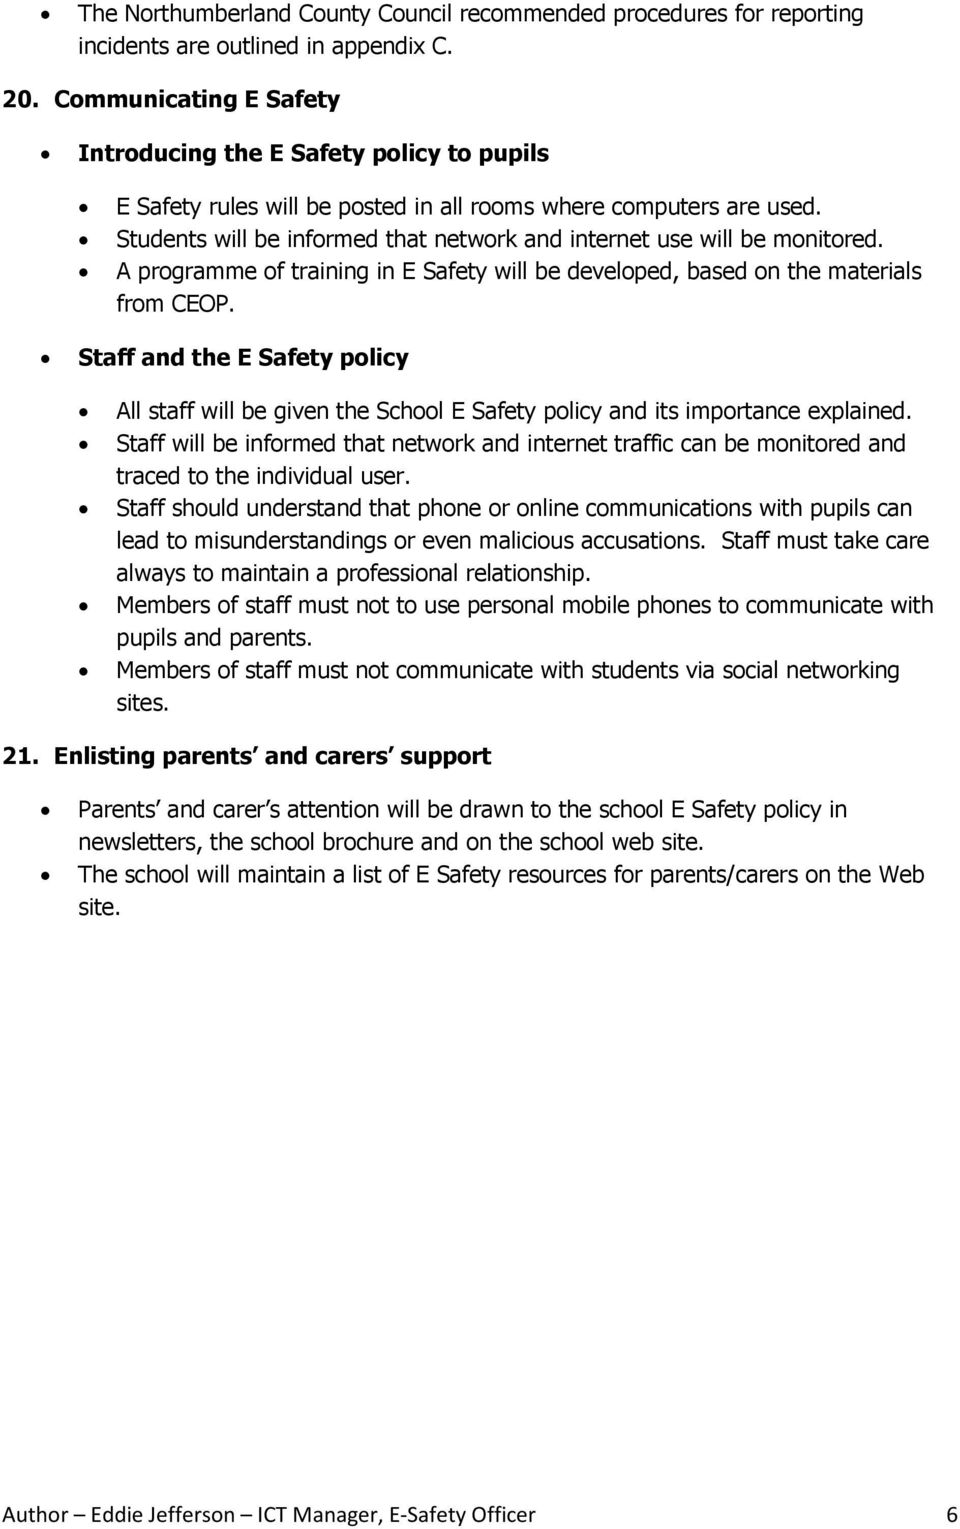 Students will be informed that network and internet use will be monitored. A programme of training in E Safety will be developed, based on the materials from CEOP.